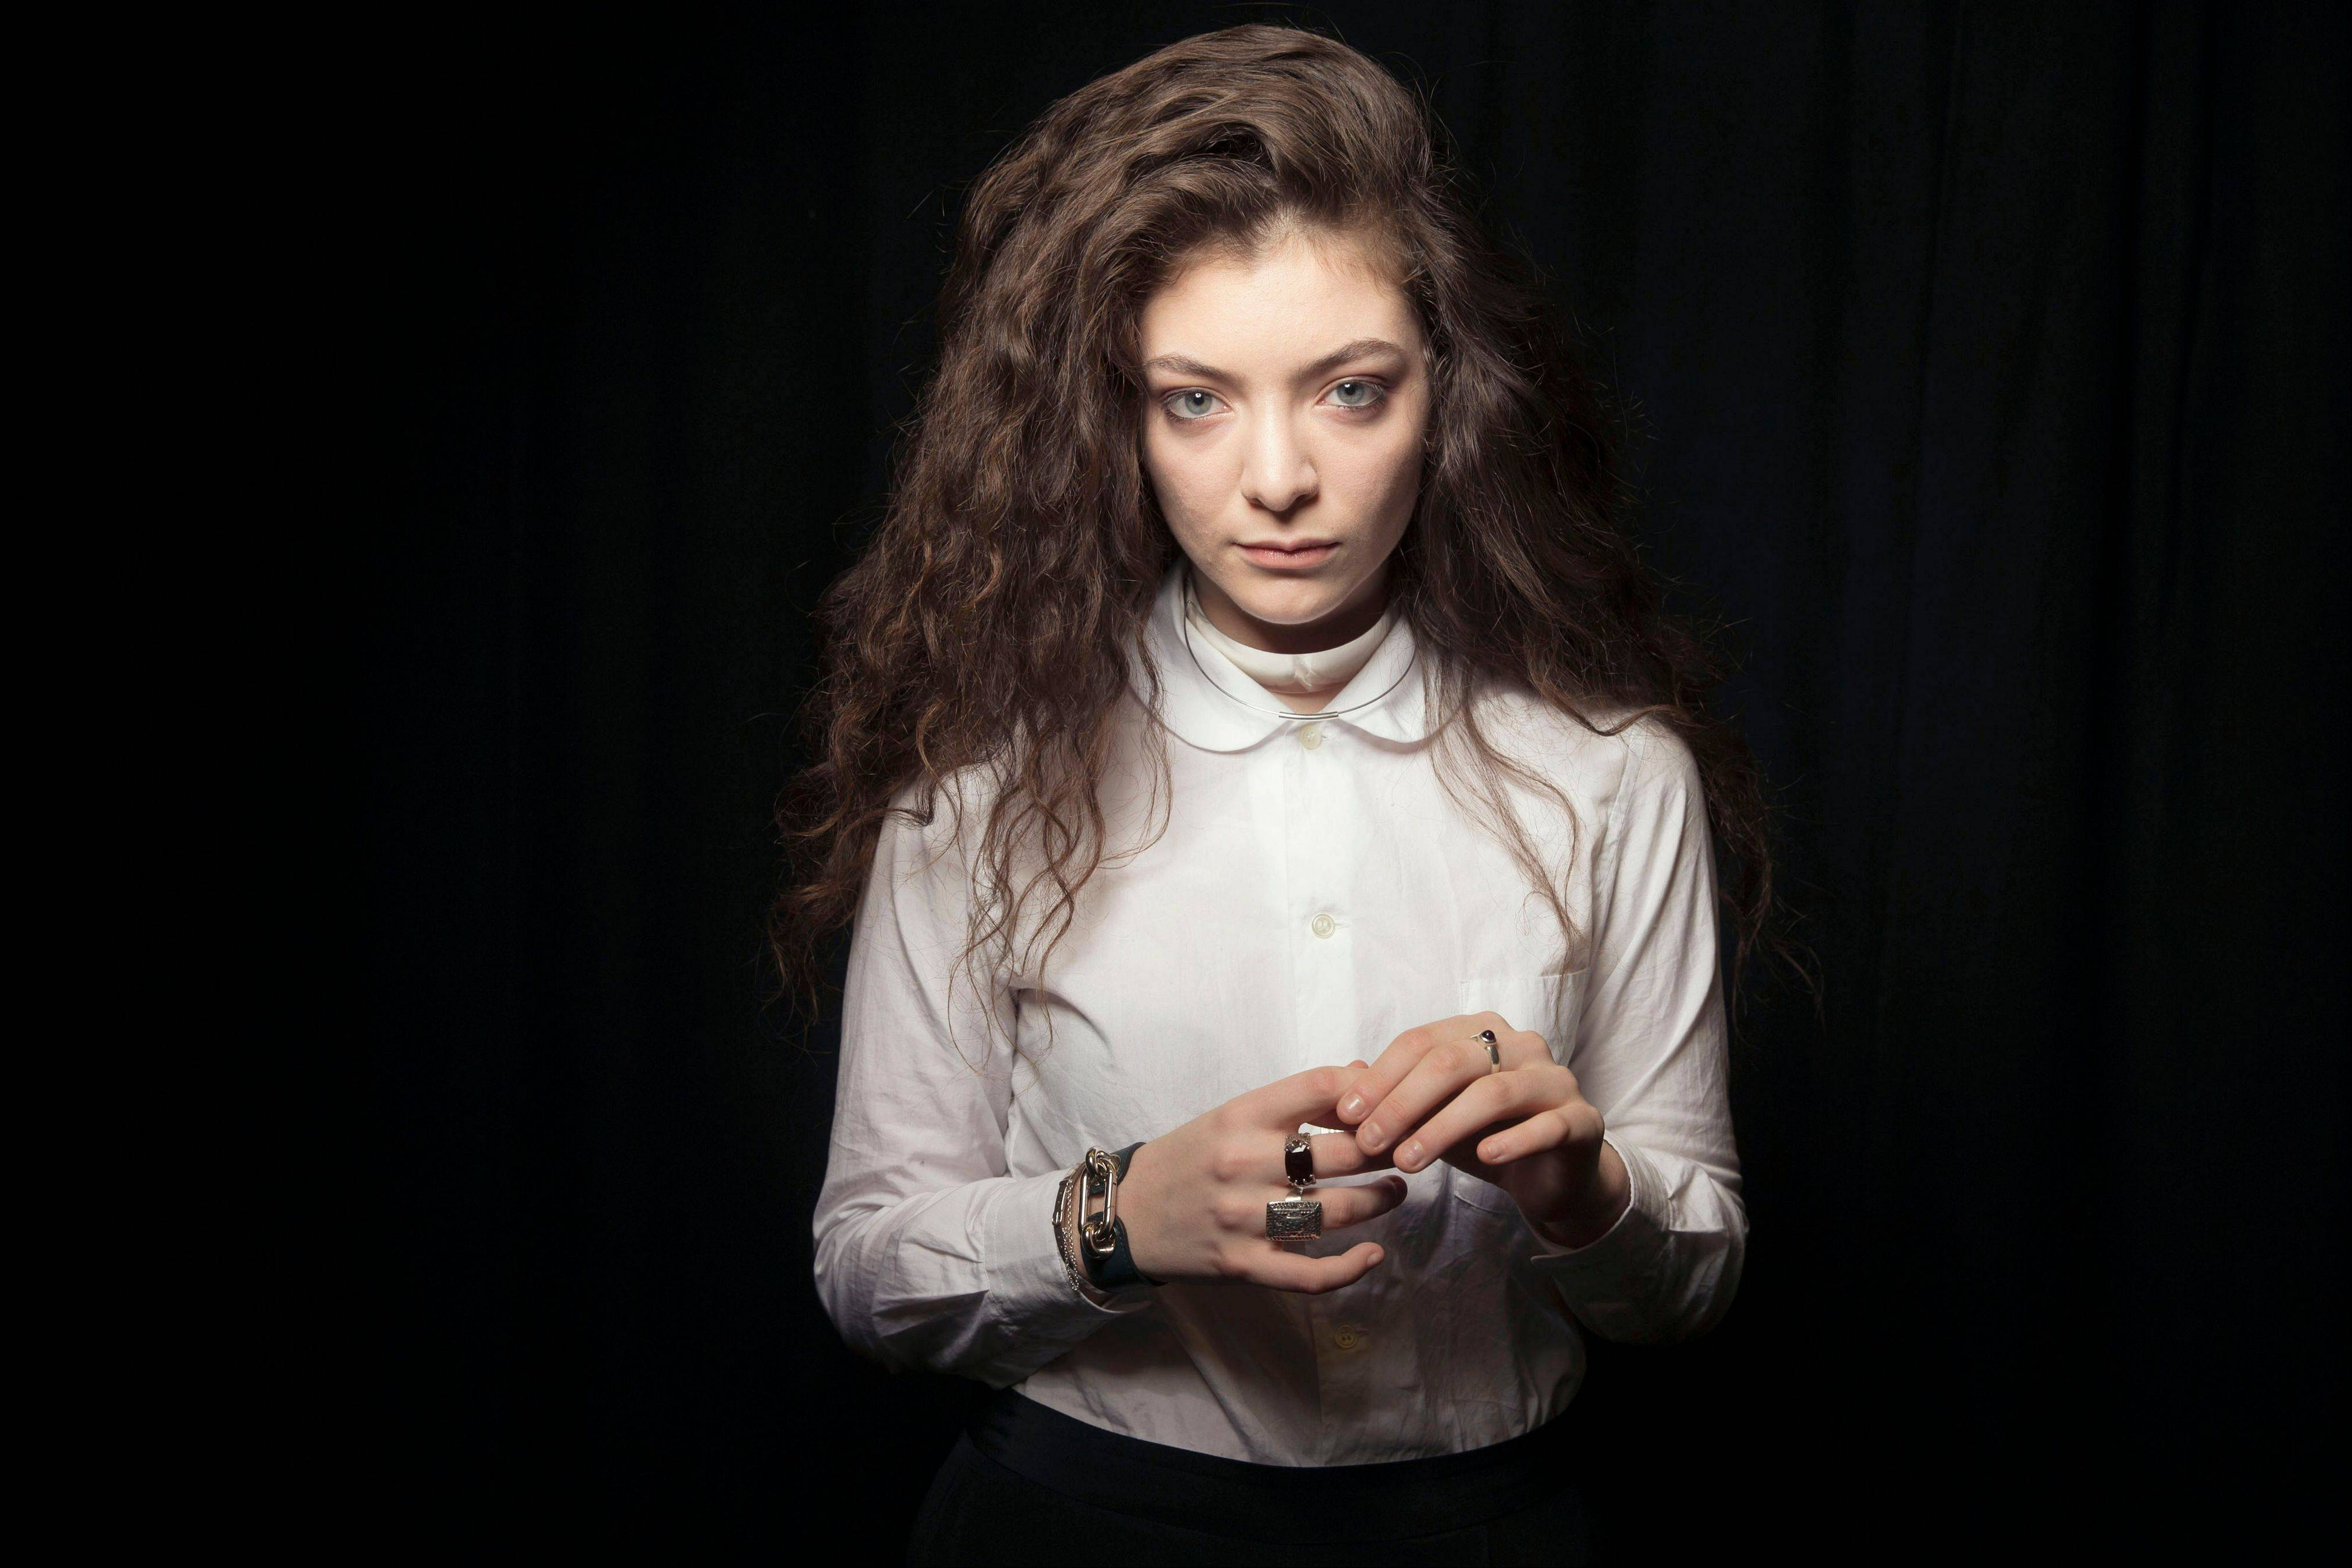 New Zealand singer Lorde is MTVU's woman of the year.